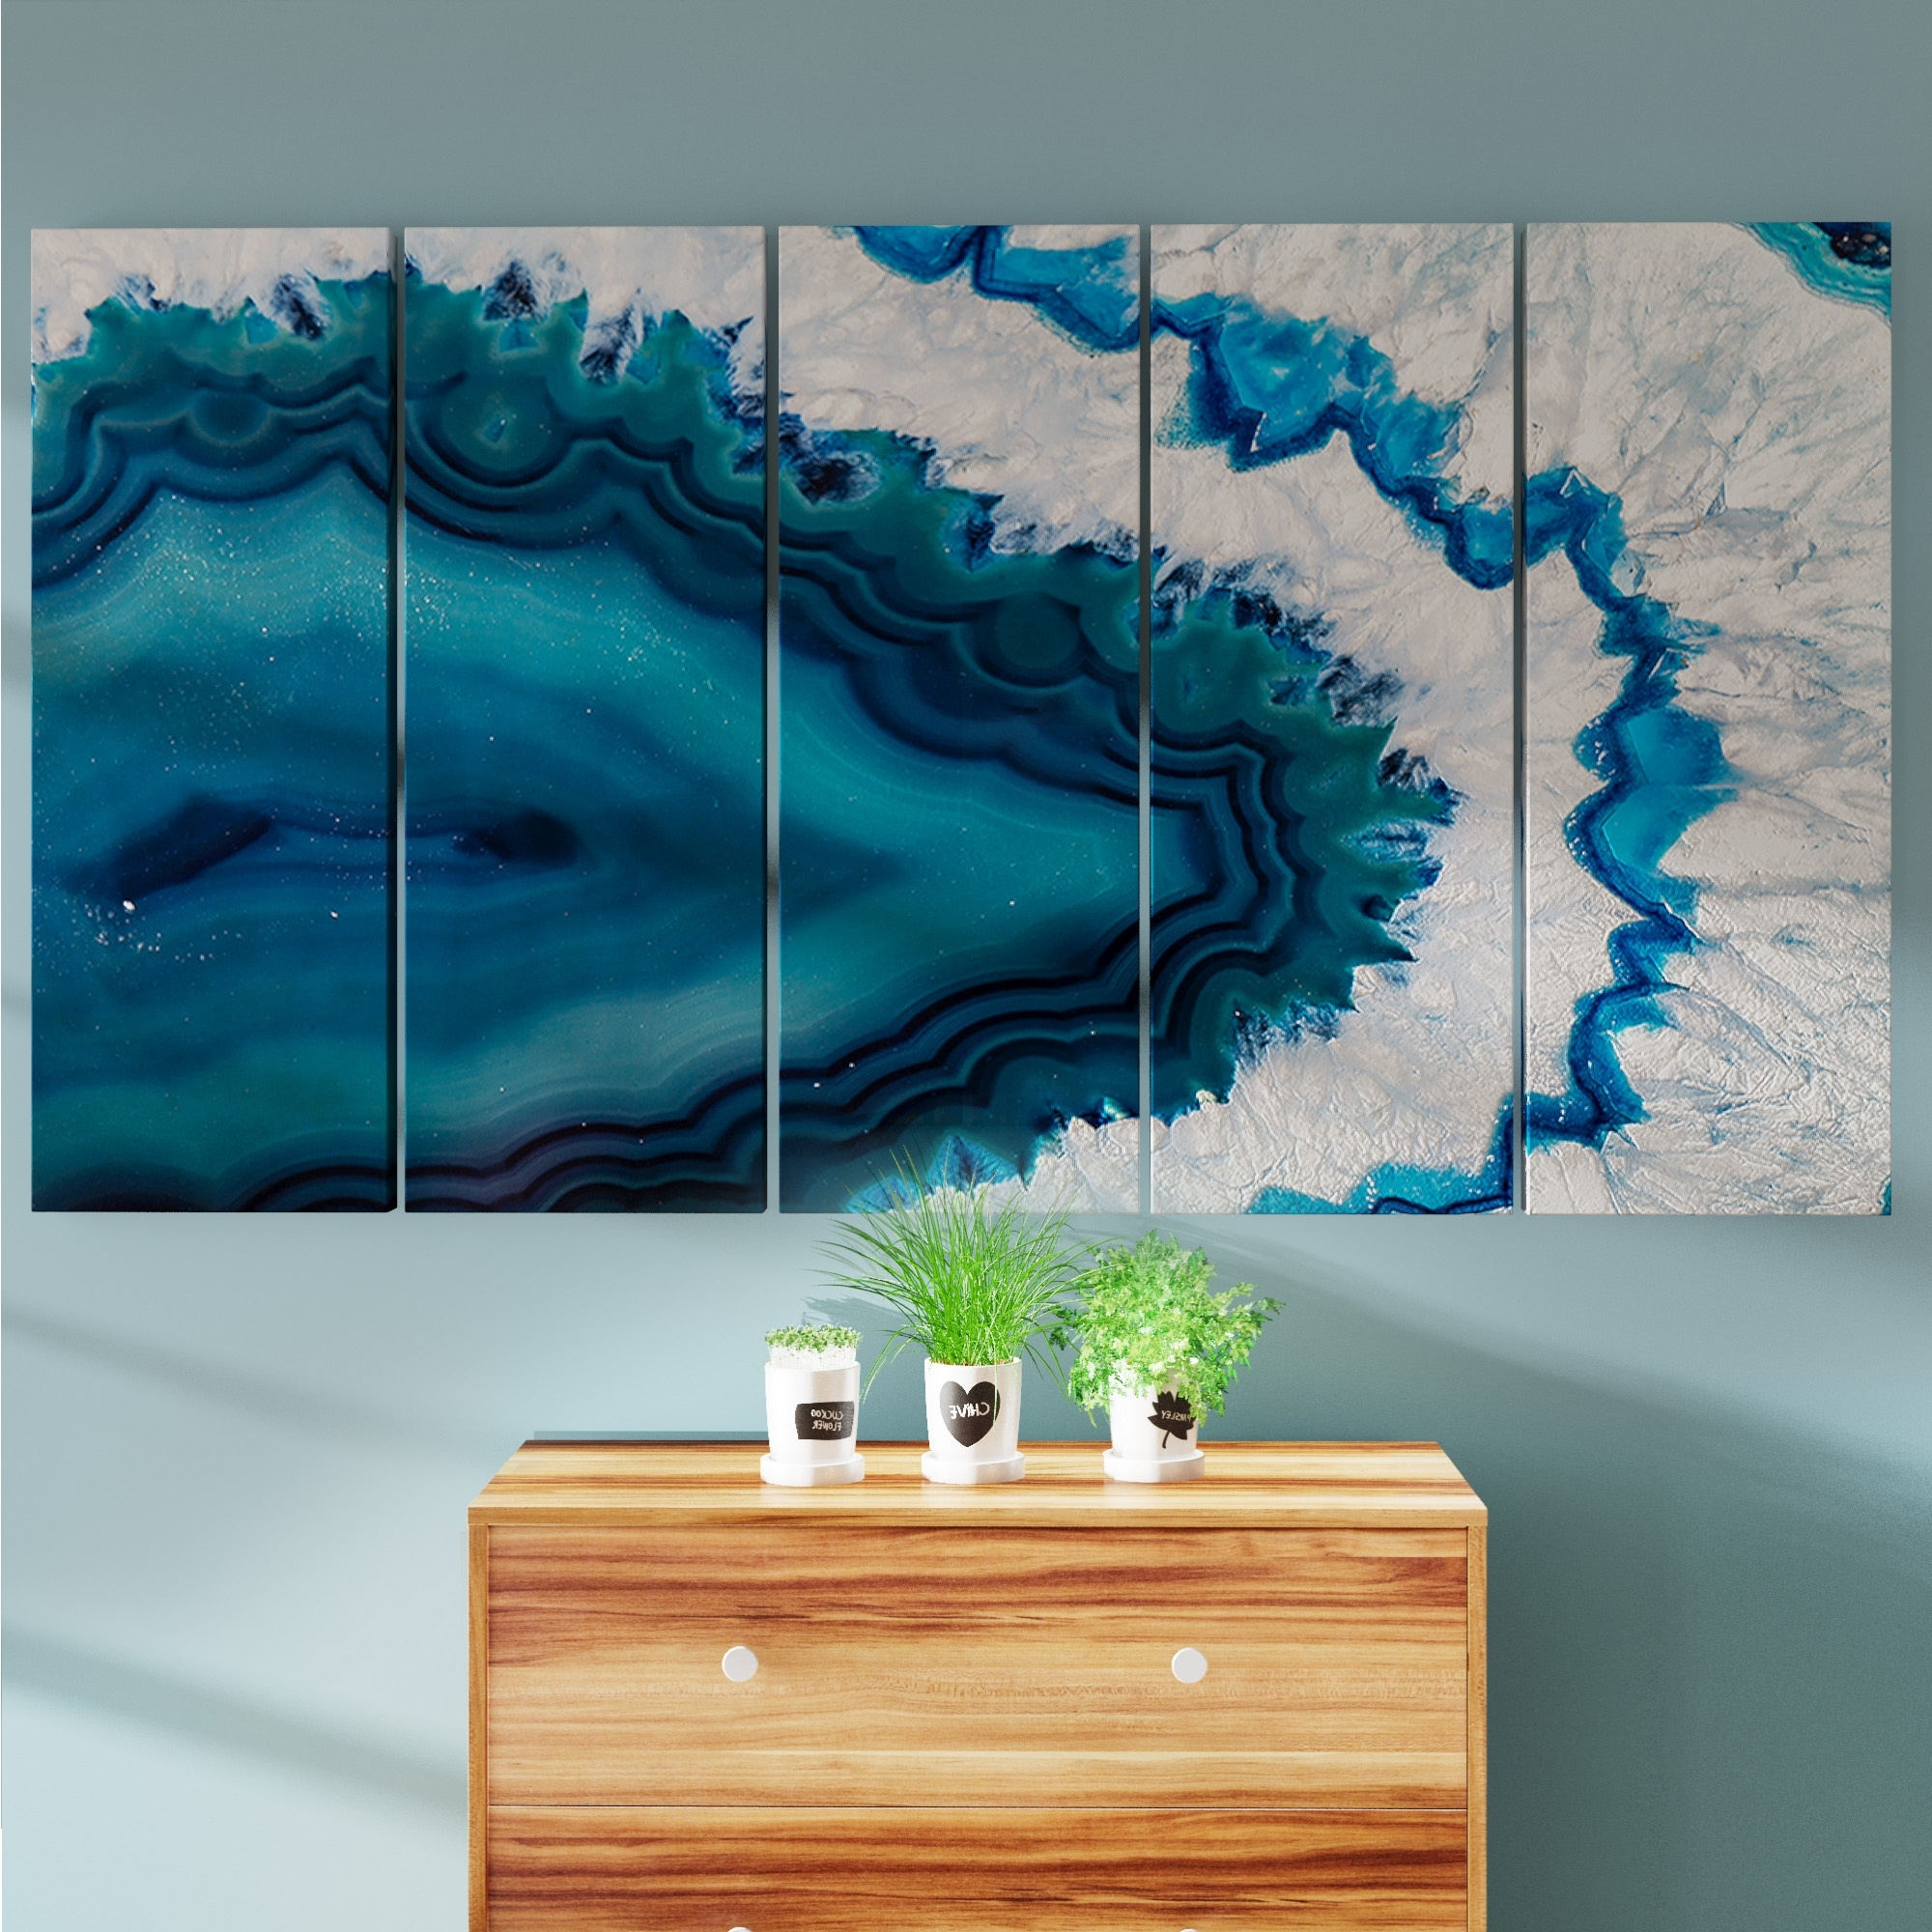 Popular Overstock Wall Art Throughout Shop Porch & Den Blue Brazilian Geode' Abstract Canvas Wall Art (View 9 of 15)